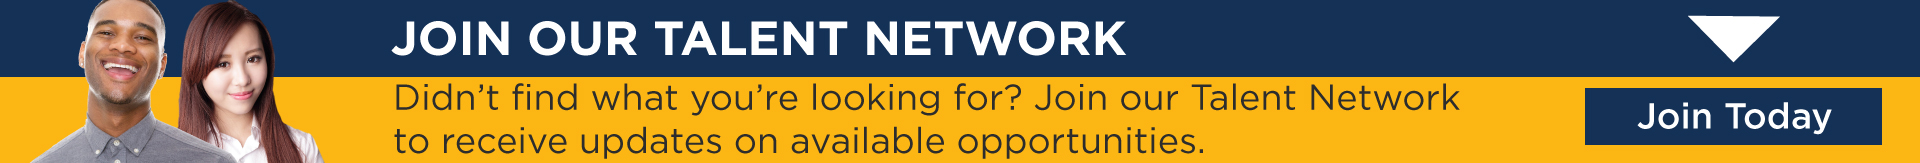 Didn't find what you're looking for? Join our Talent Network to receive updates on available opportunities